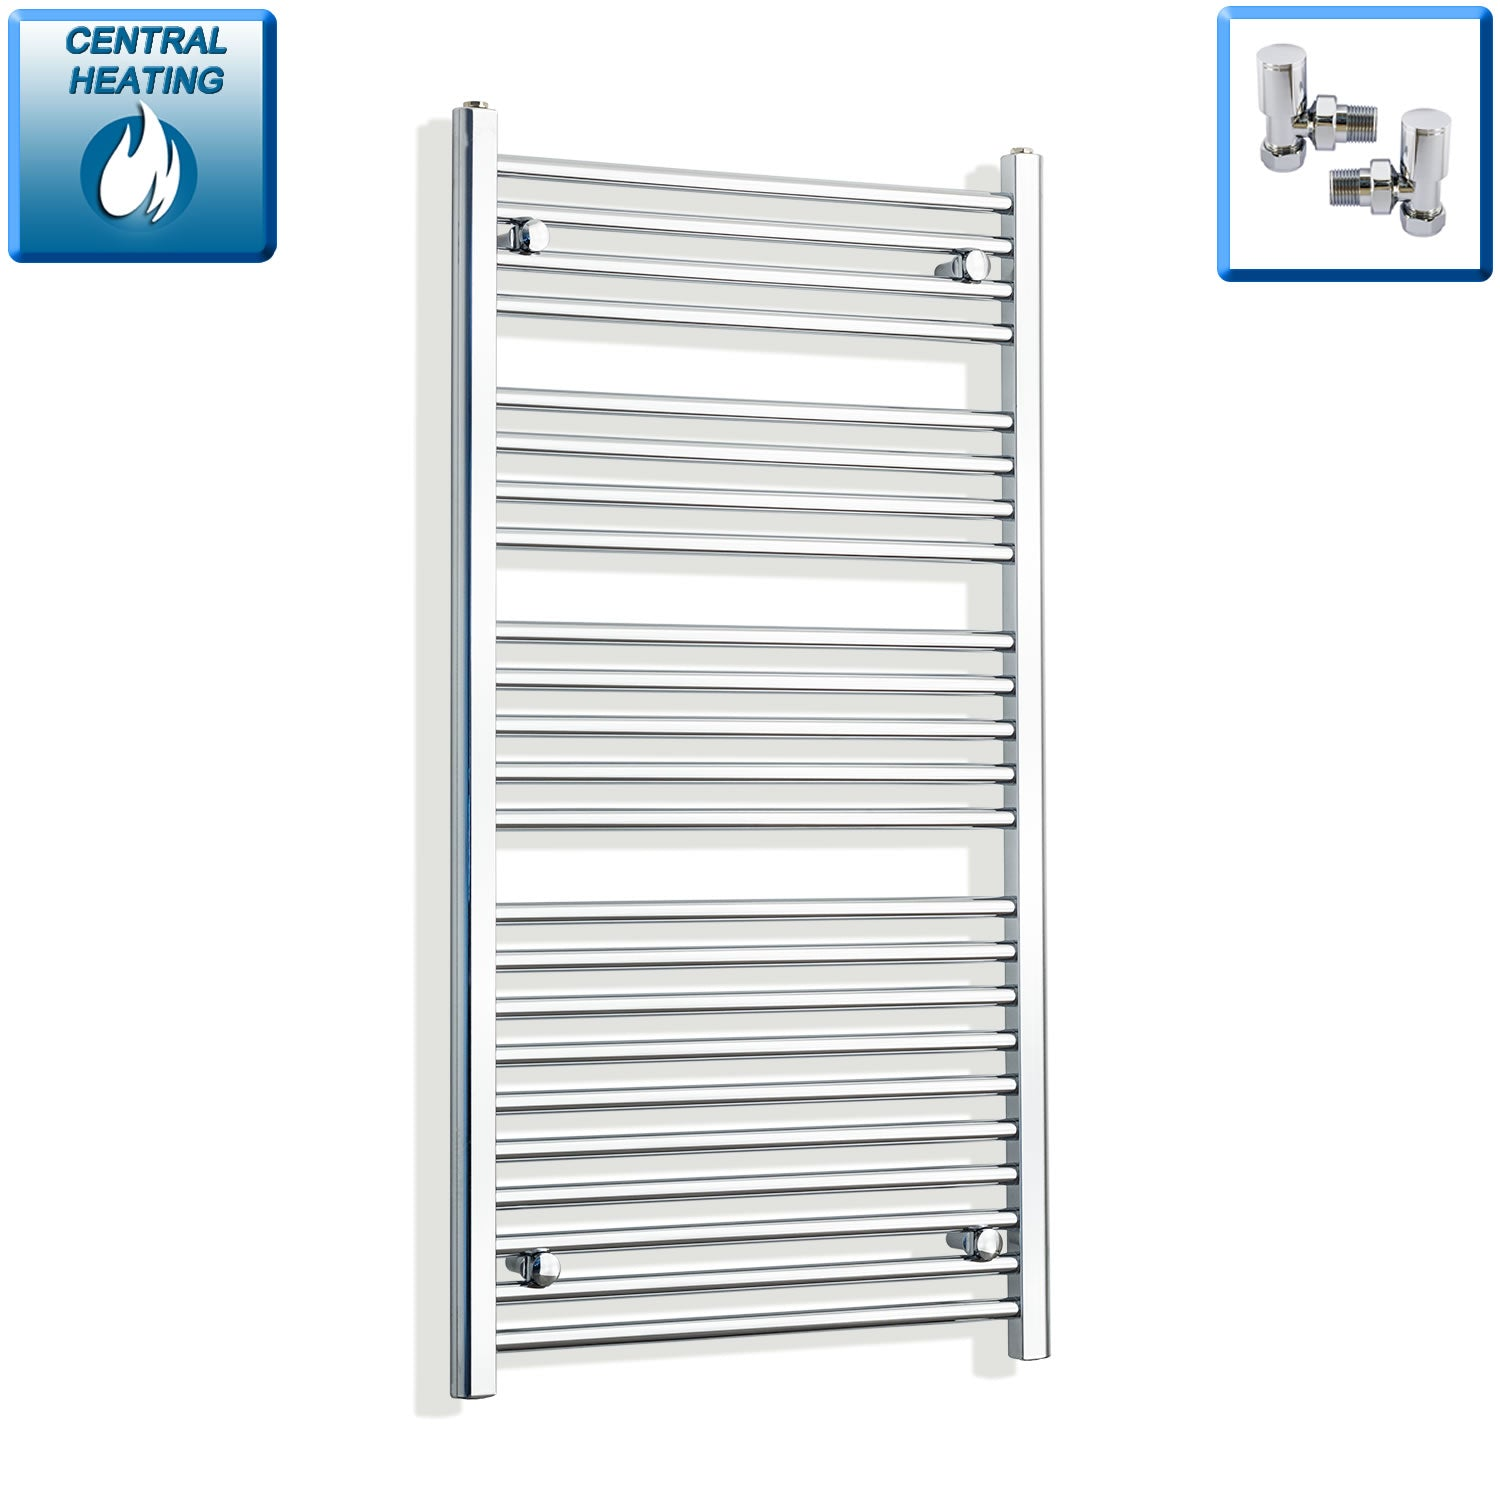 700mm Wide 1200mm High Chrome Towel Rail Radiator With Angled Valve